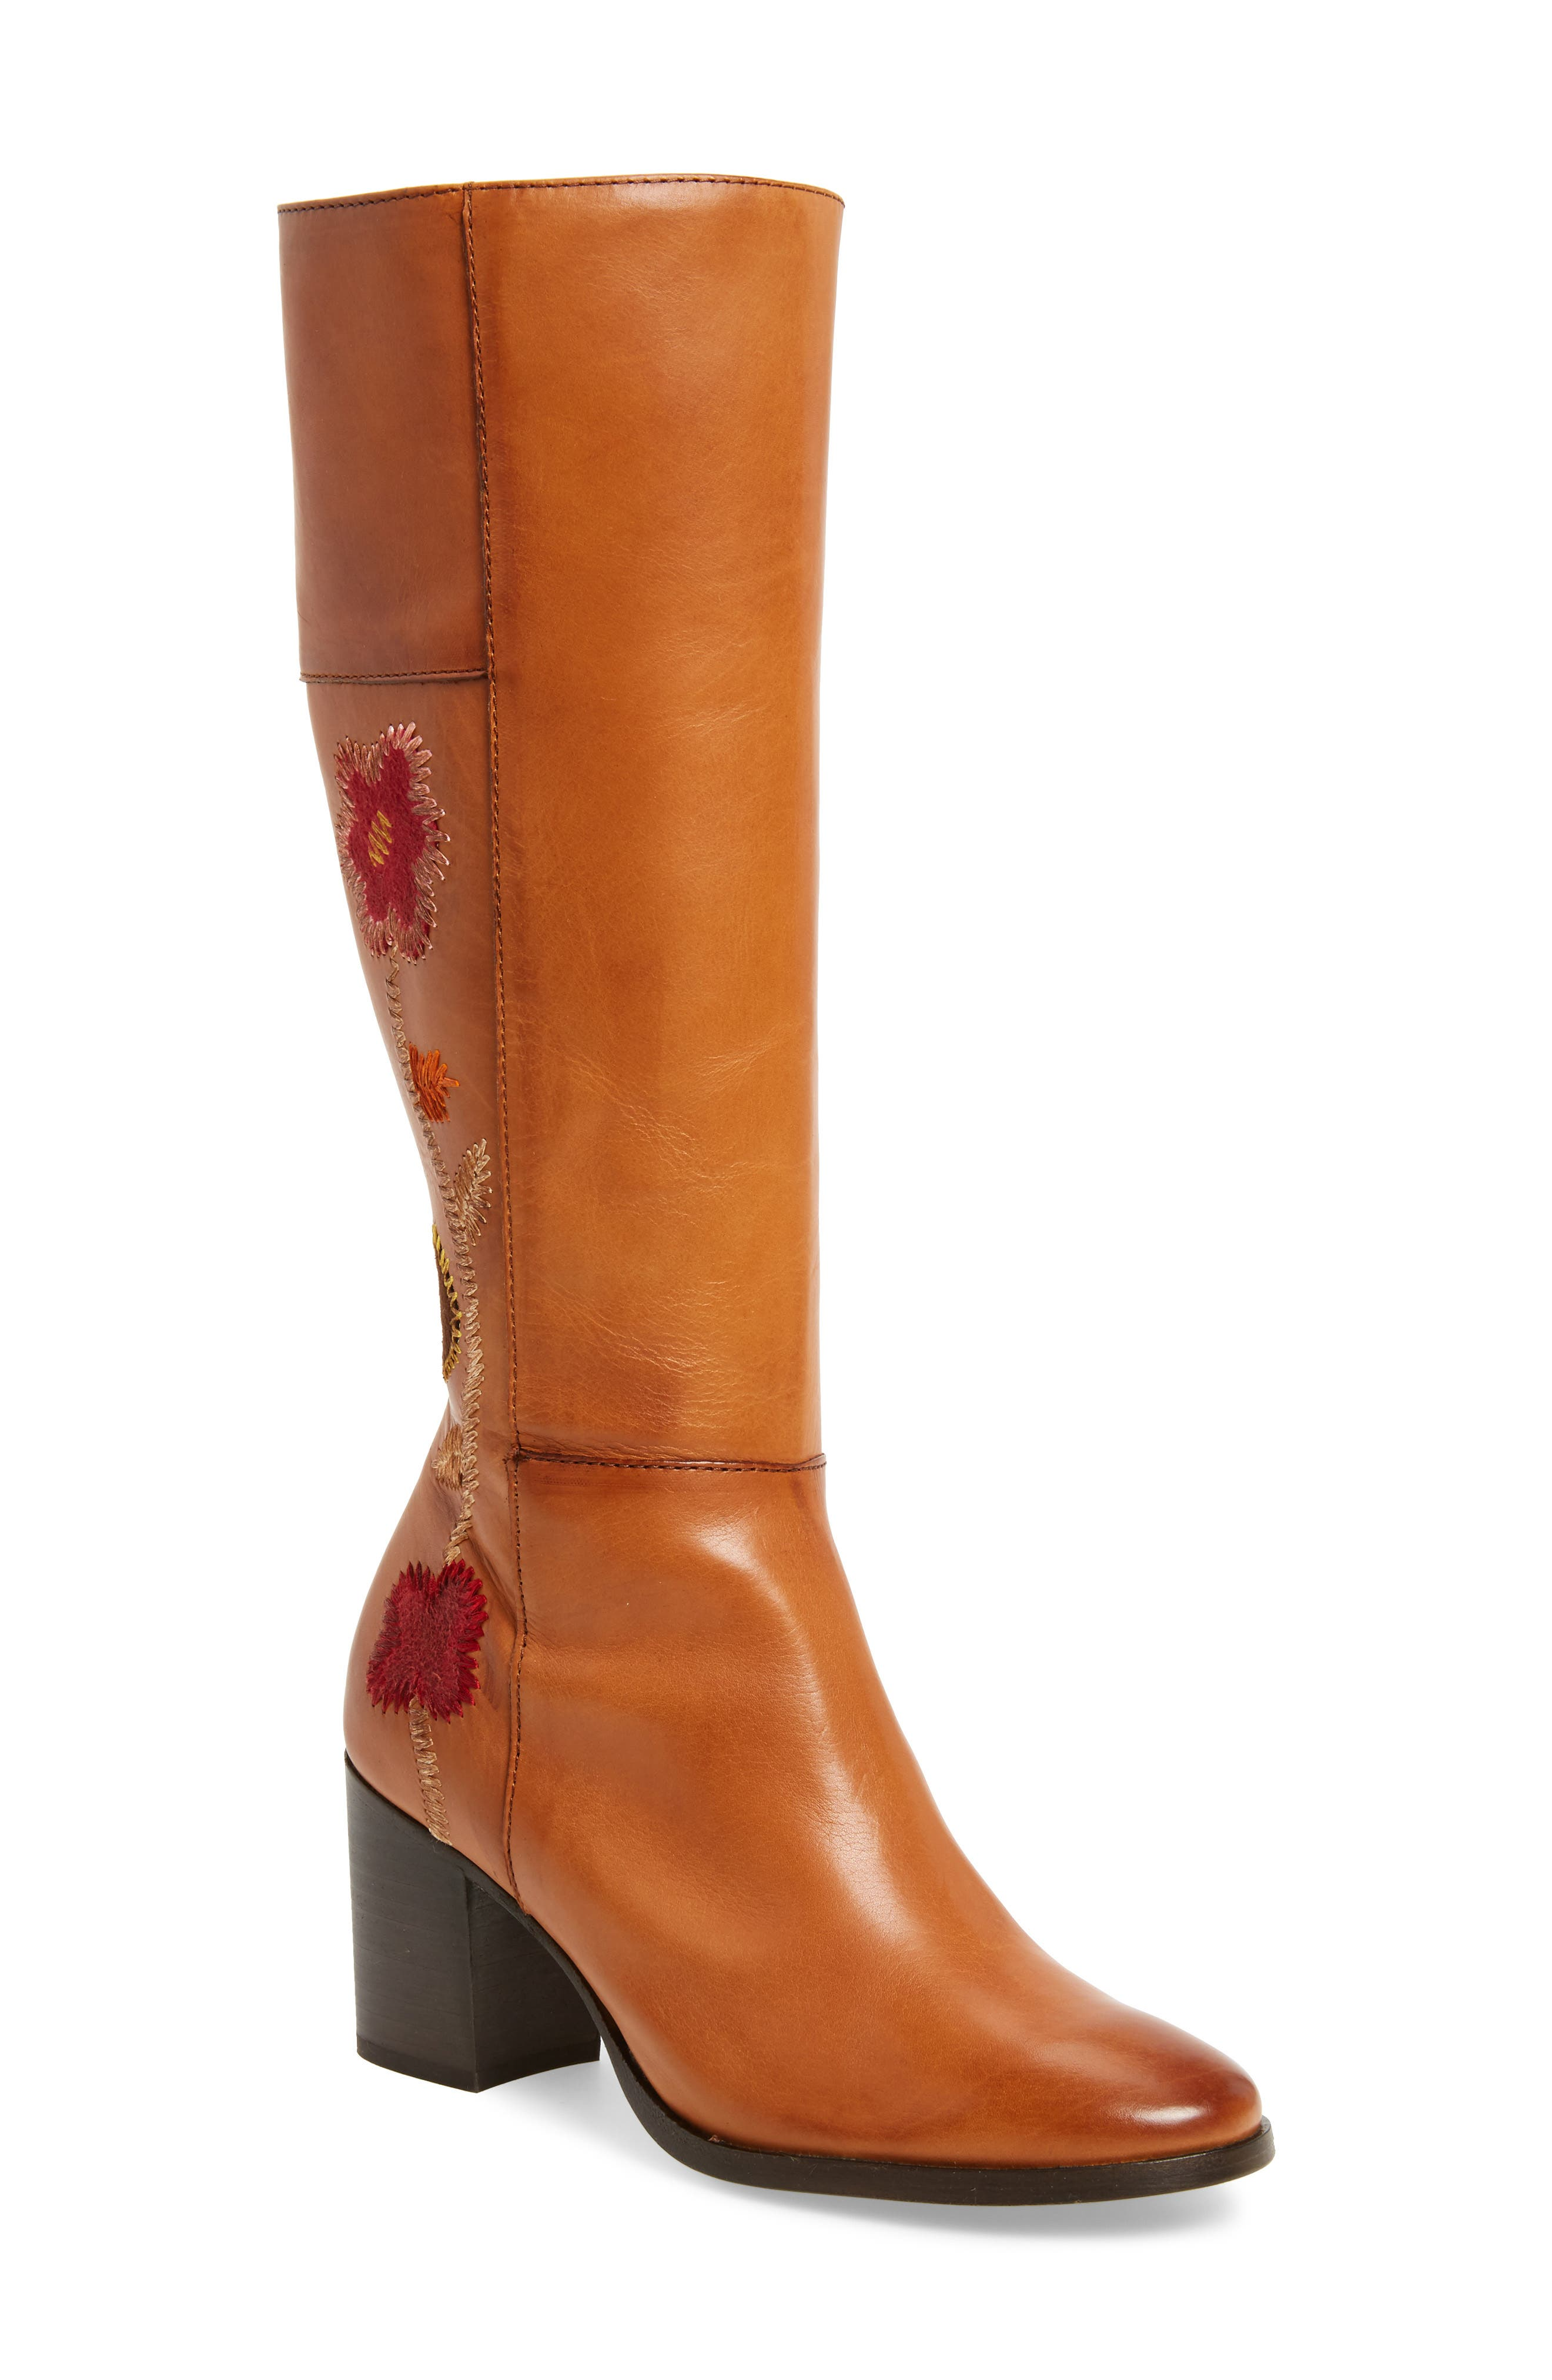 Main Image - Frye Nova Floral Embroidered Knee High Boot (Women)